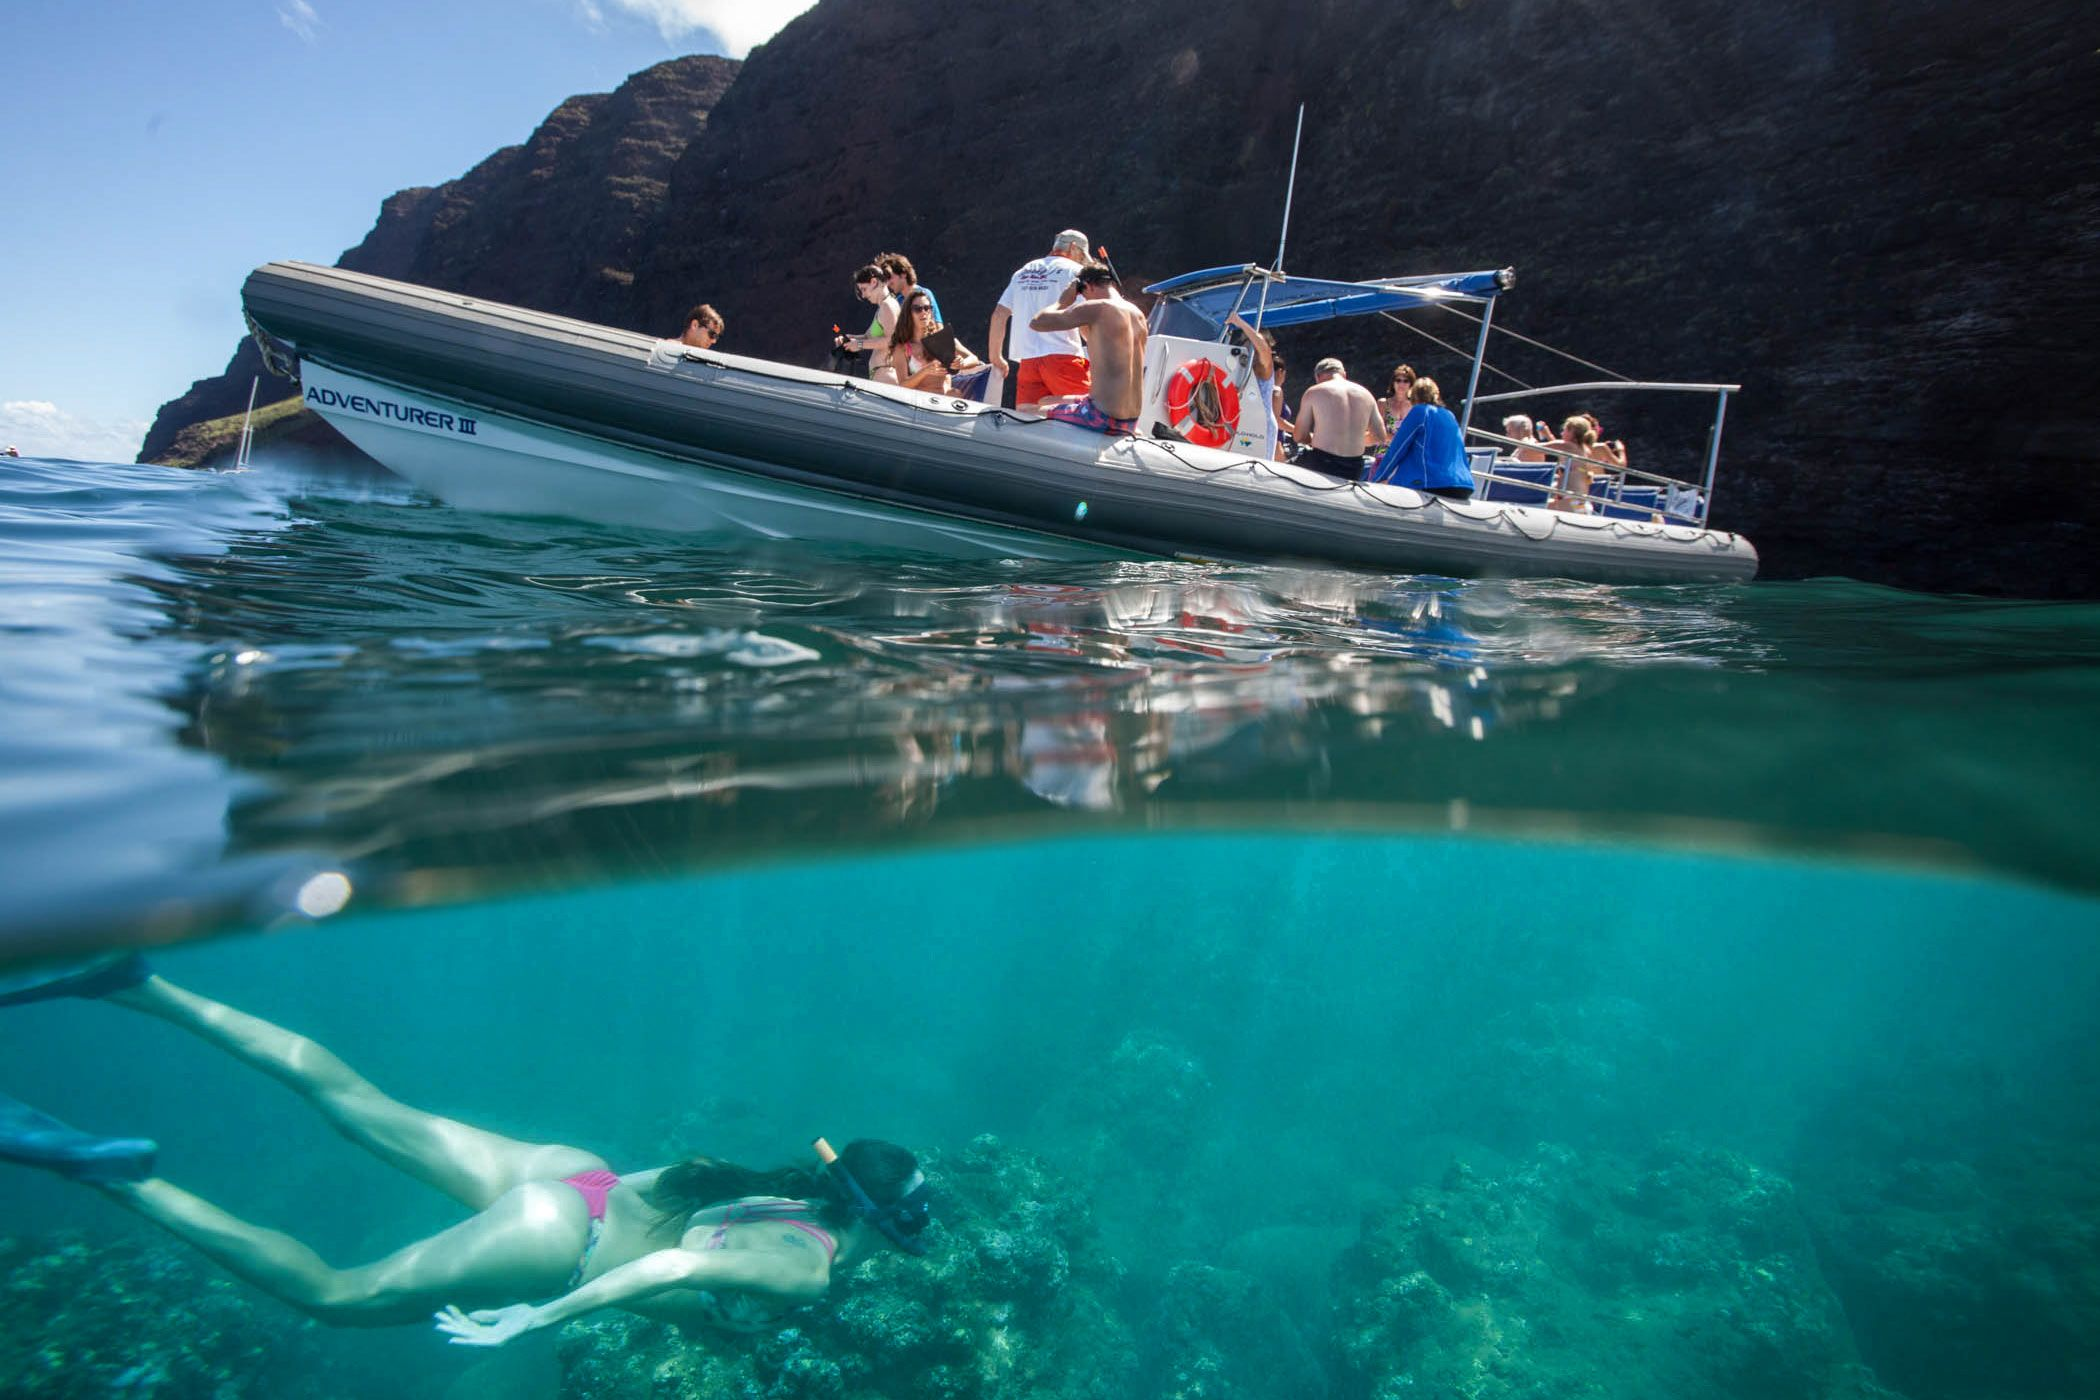 Come Adventure With Us To The Napali Coast On Our Unique